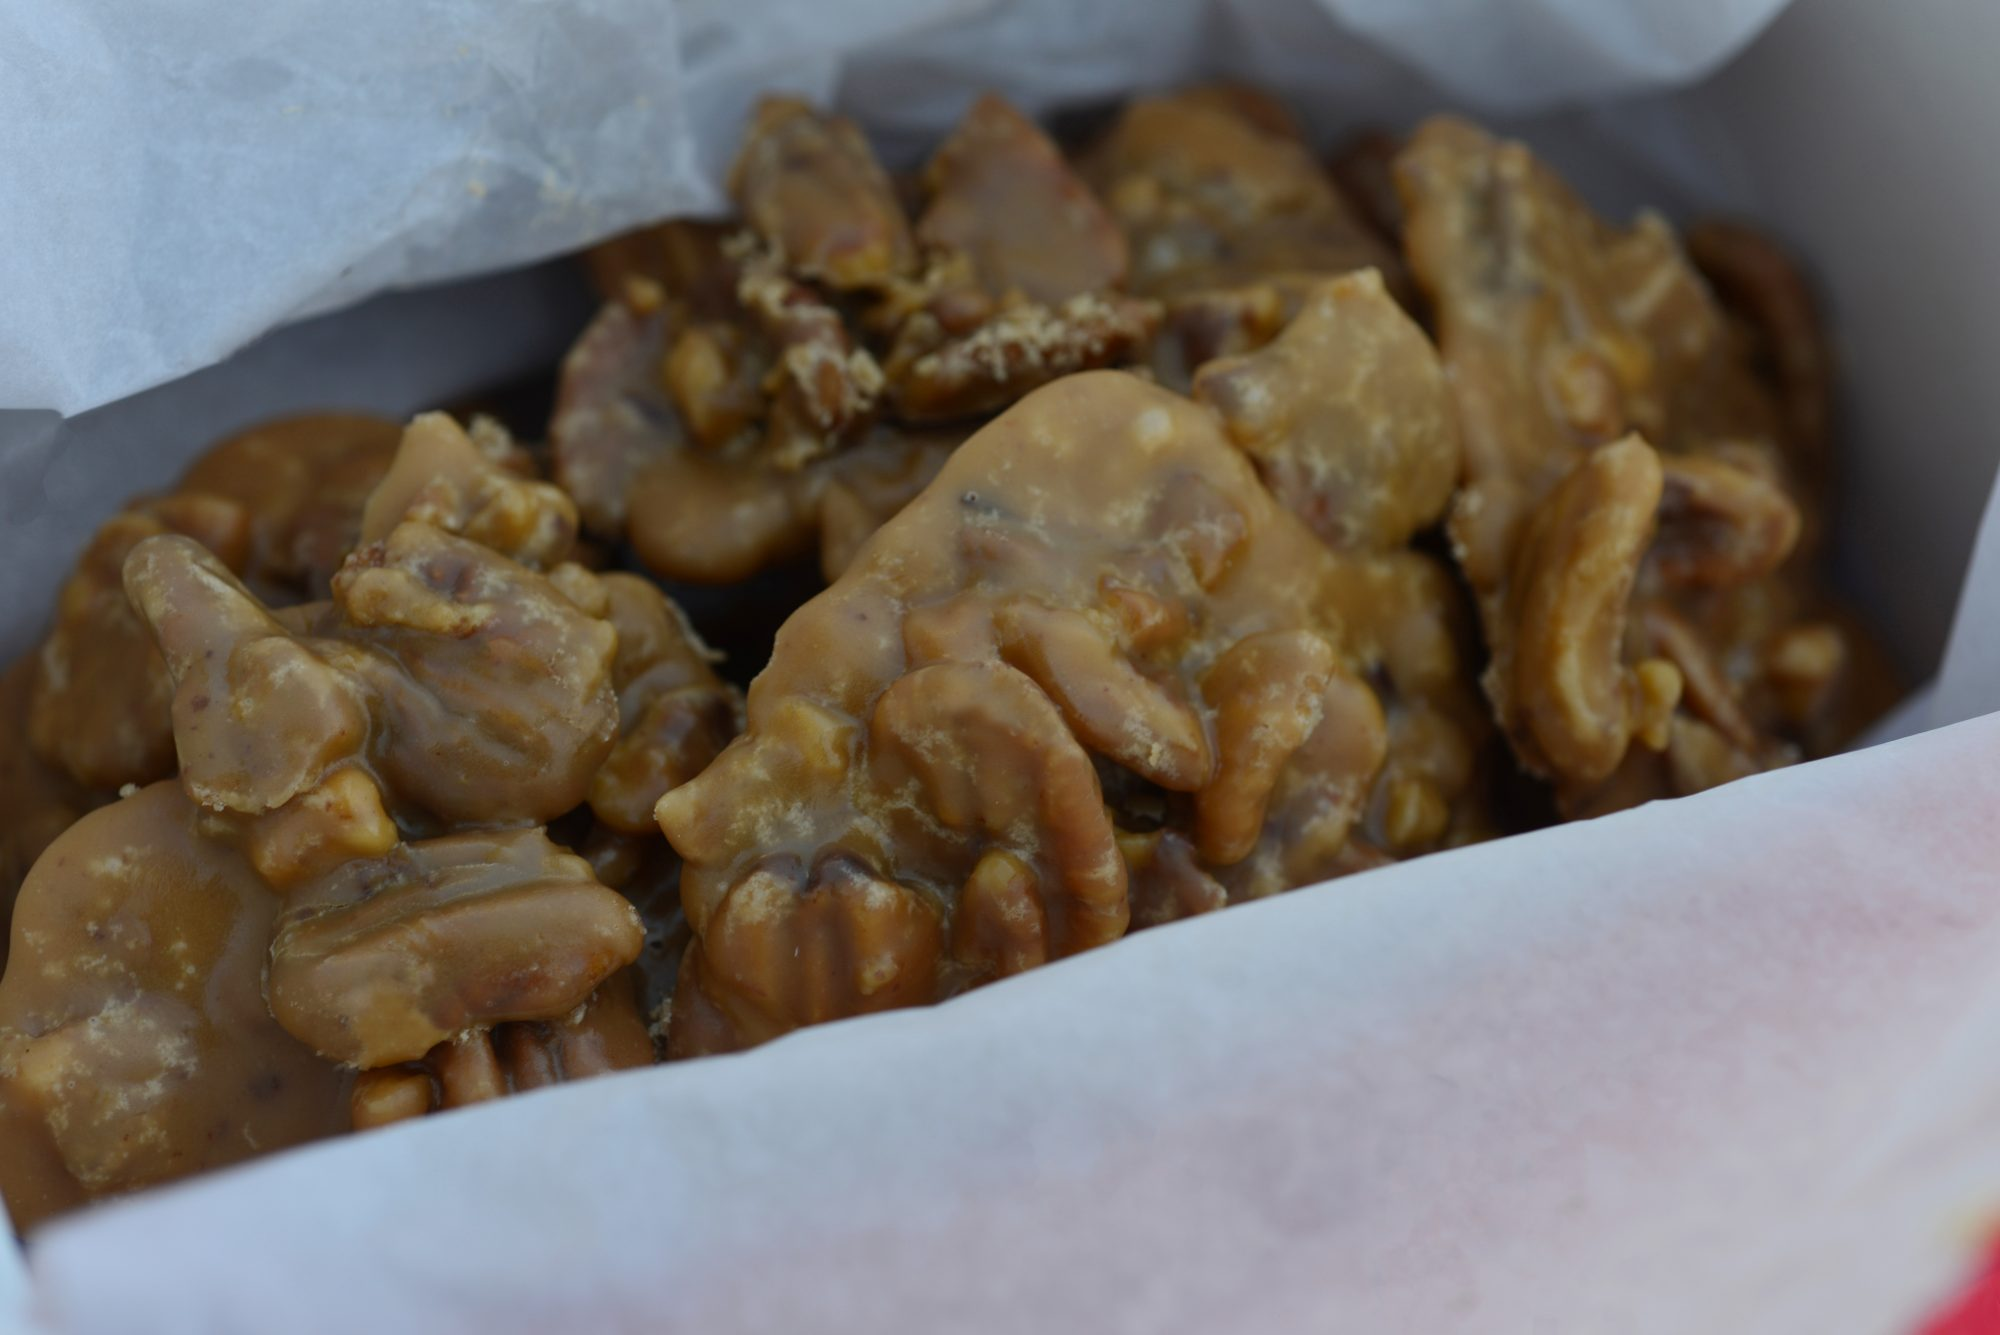 Box of pralines Getty 7/17/20